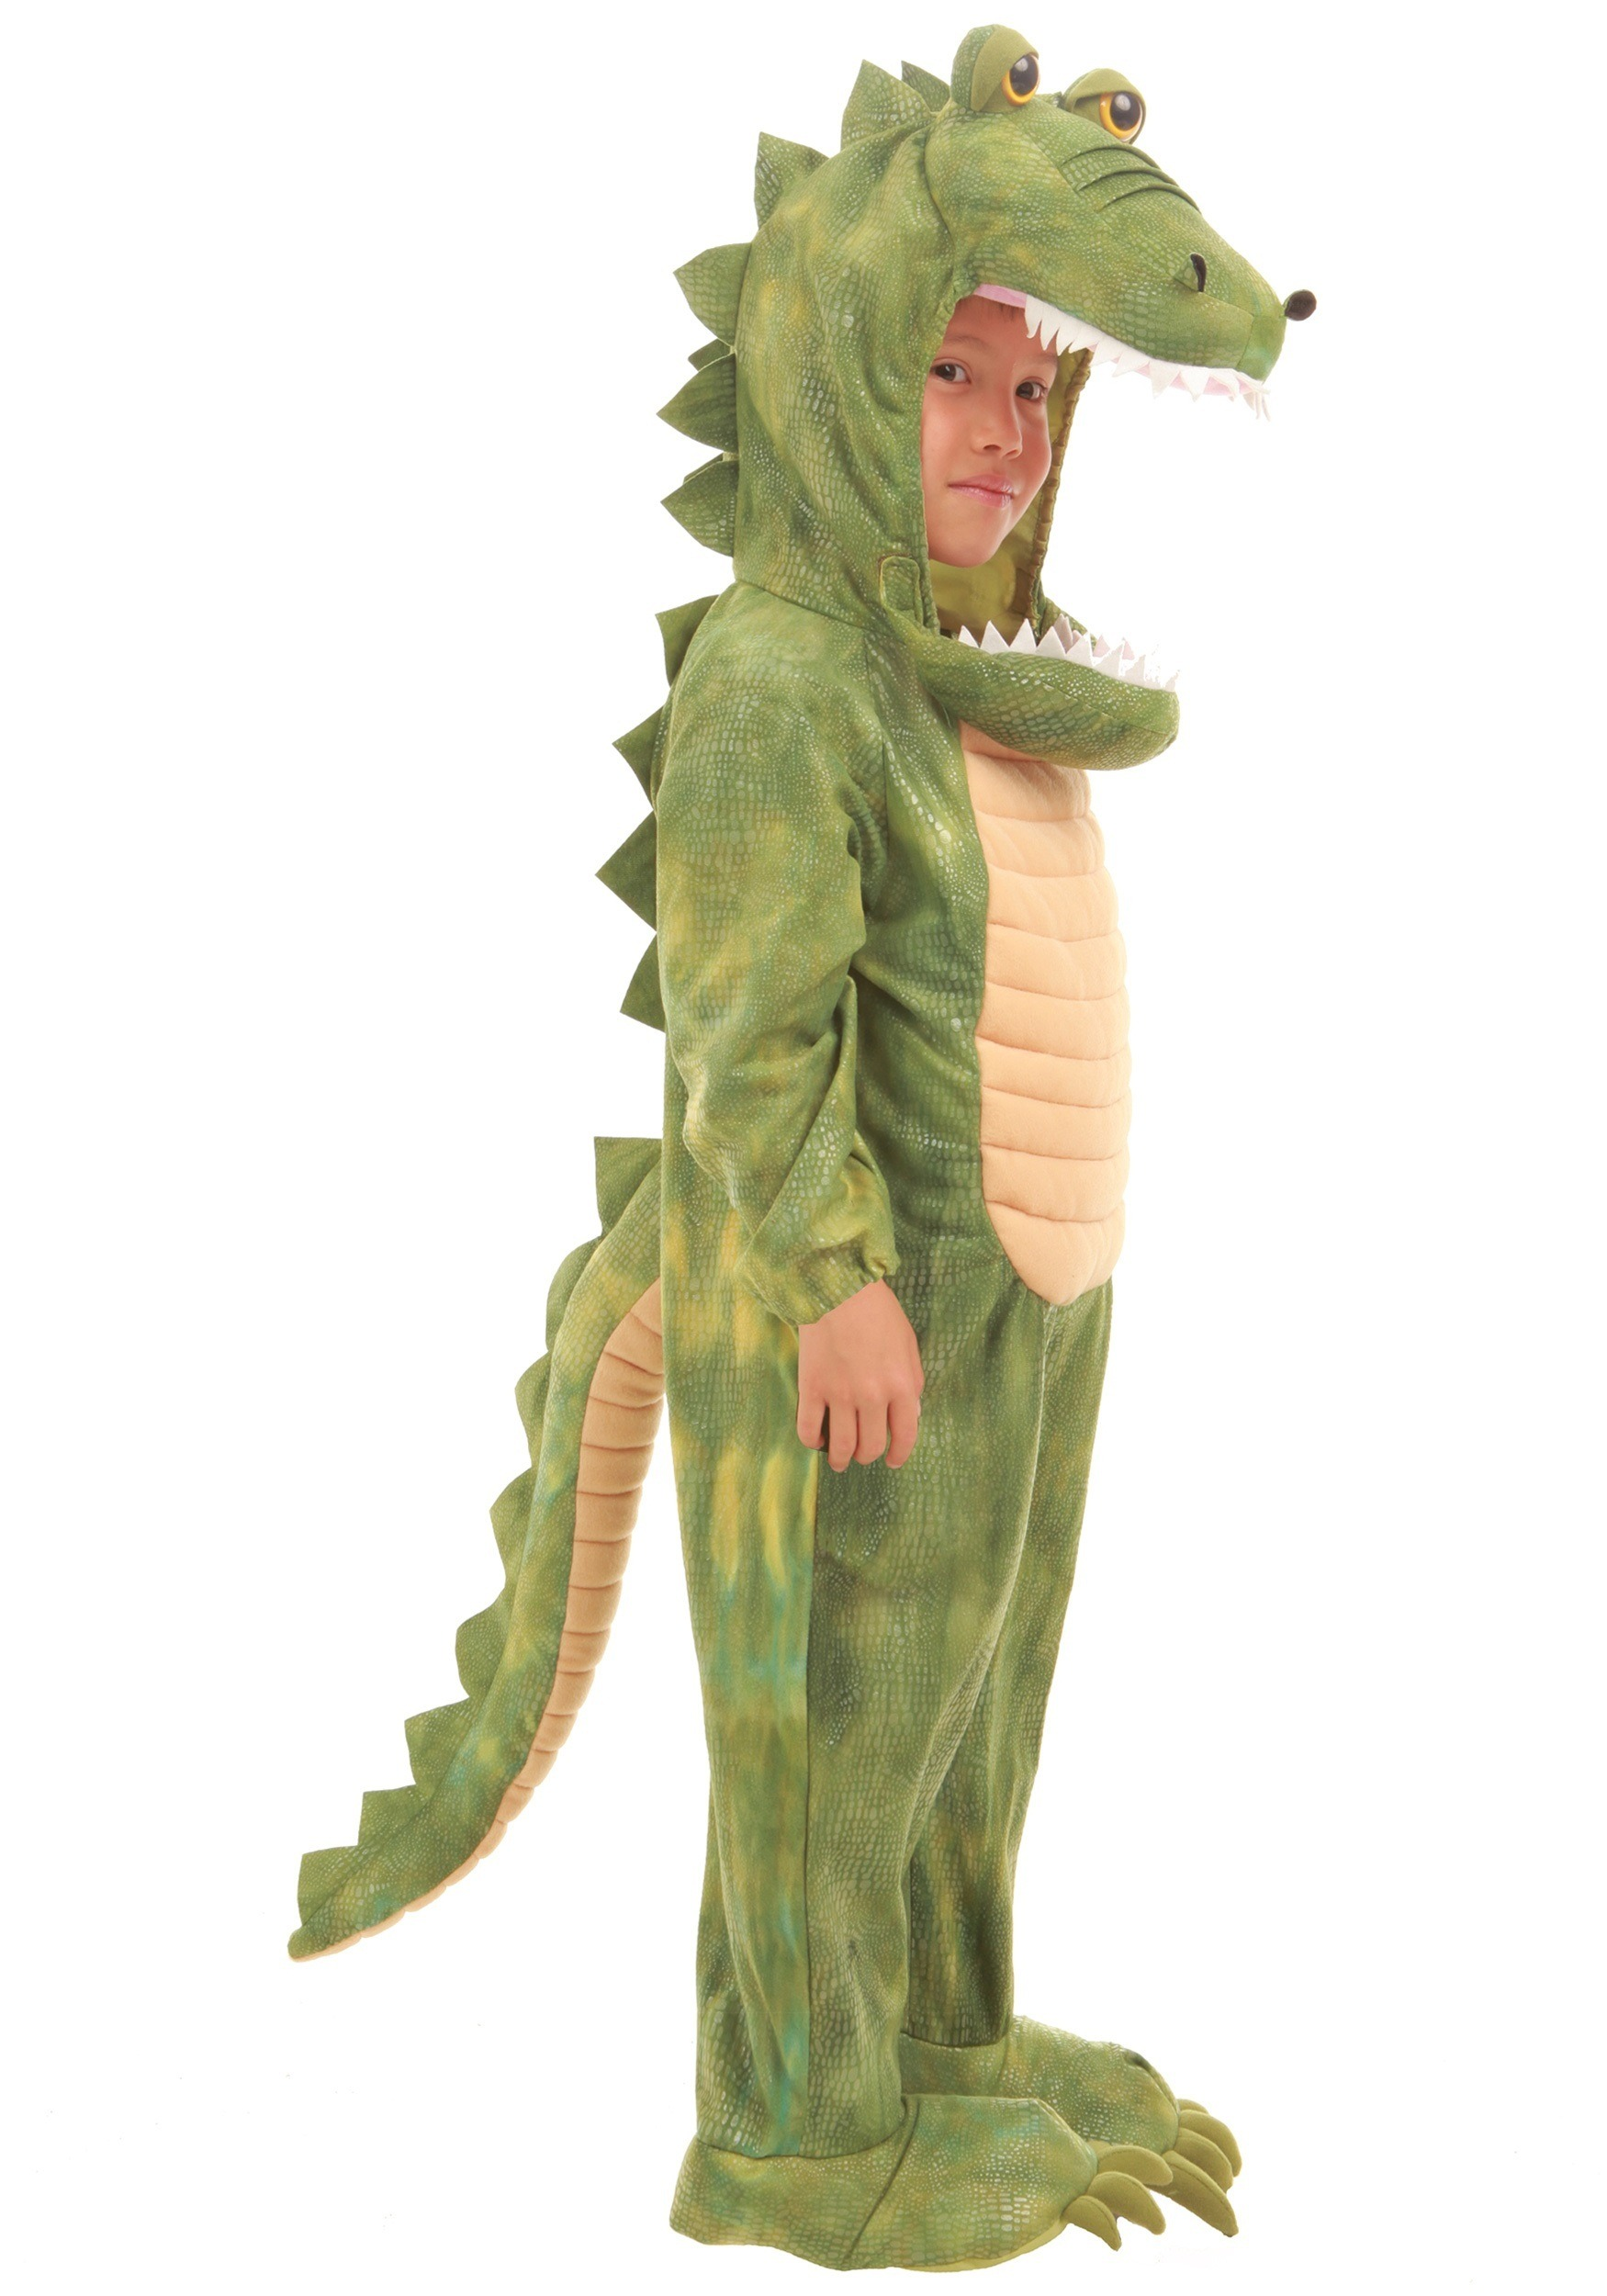 Alligator/Crocodile Costumes